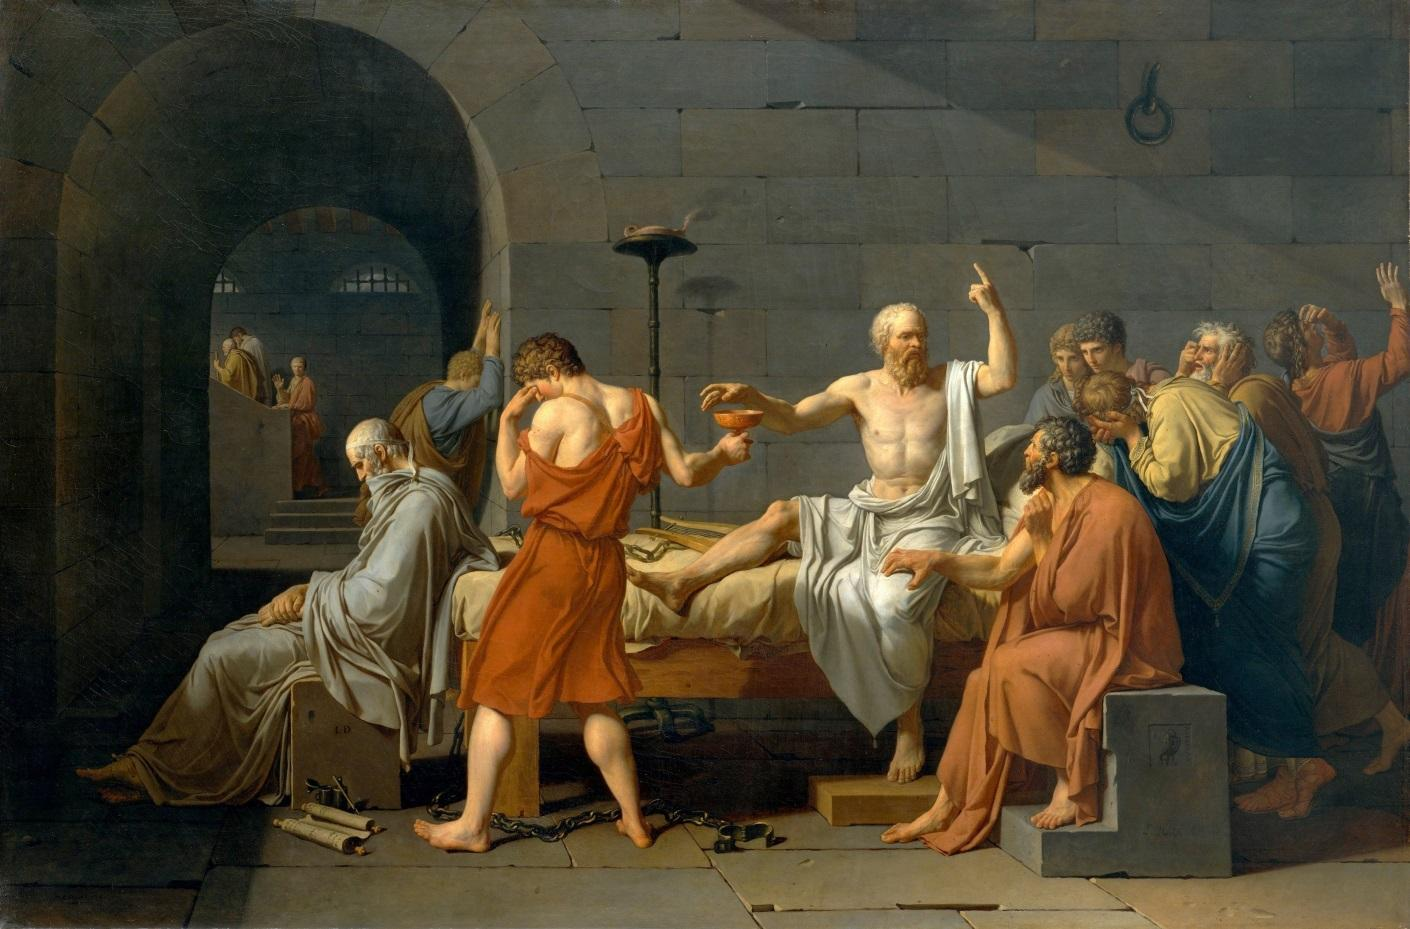 https://upload.wikimedia.org/wikipedia/commons/8/8c/David_-_The_Death_of_Socrates.jpg